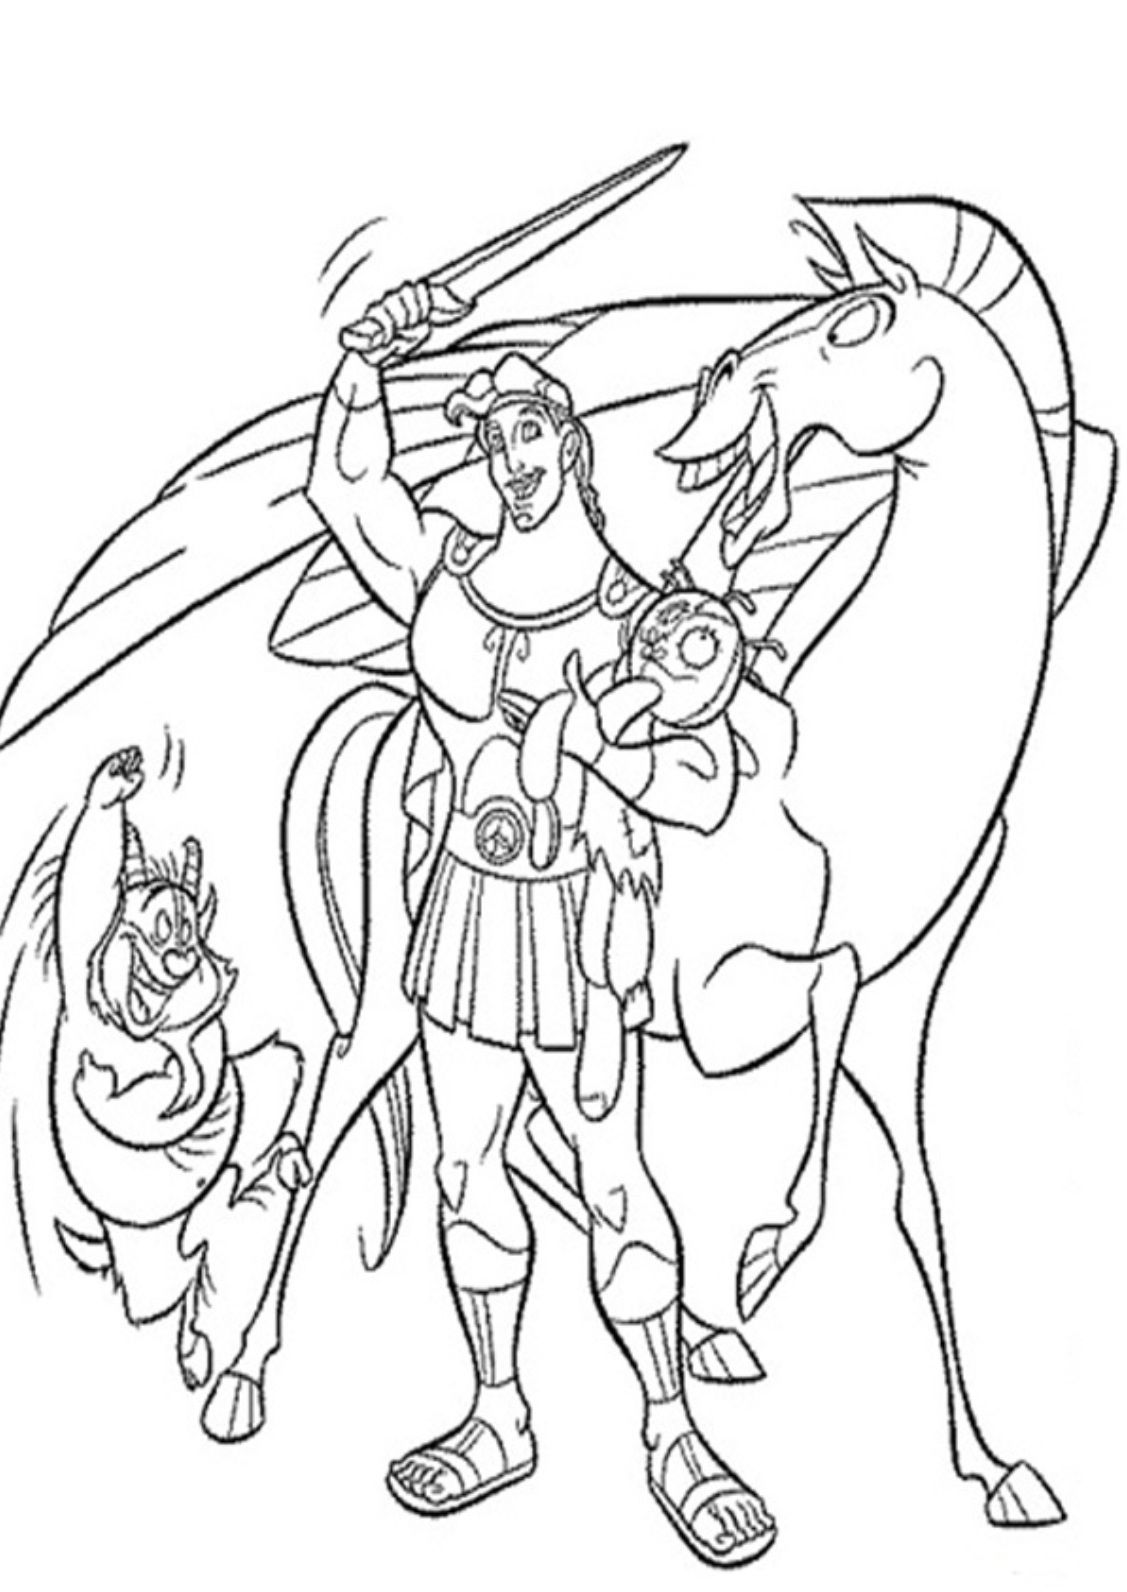 hercules win coloring pages for kids printable hercules coloring pages for kids